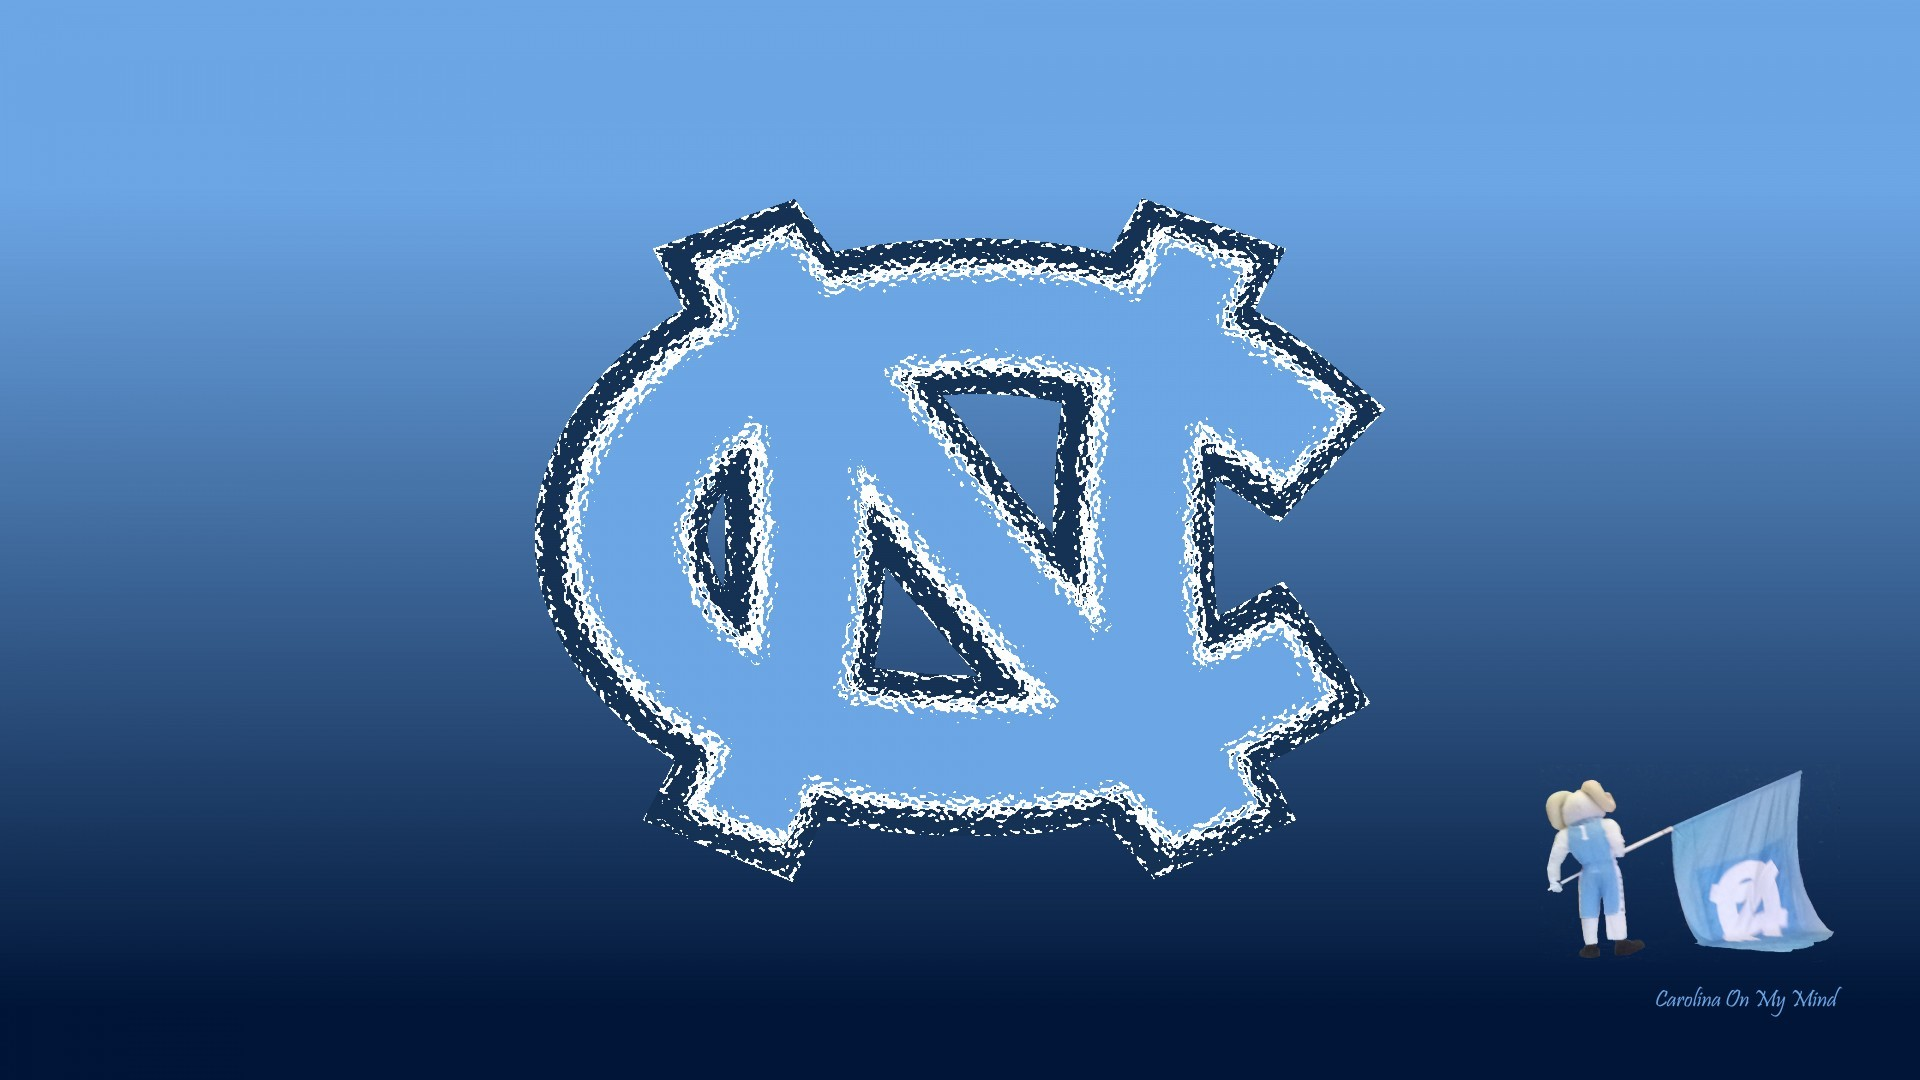 UNC Wallpaper – Glass NC with Rameses and Flag on Blue Gradient 1920 x 1080